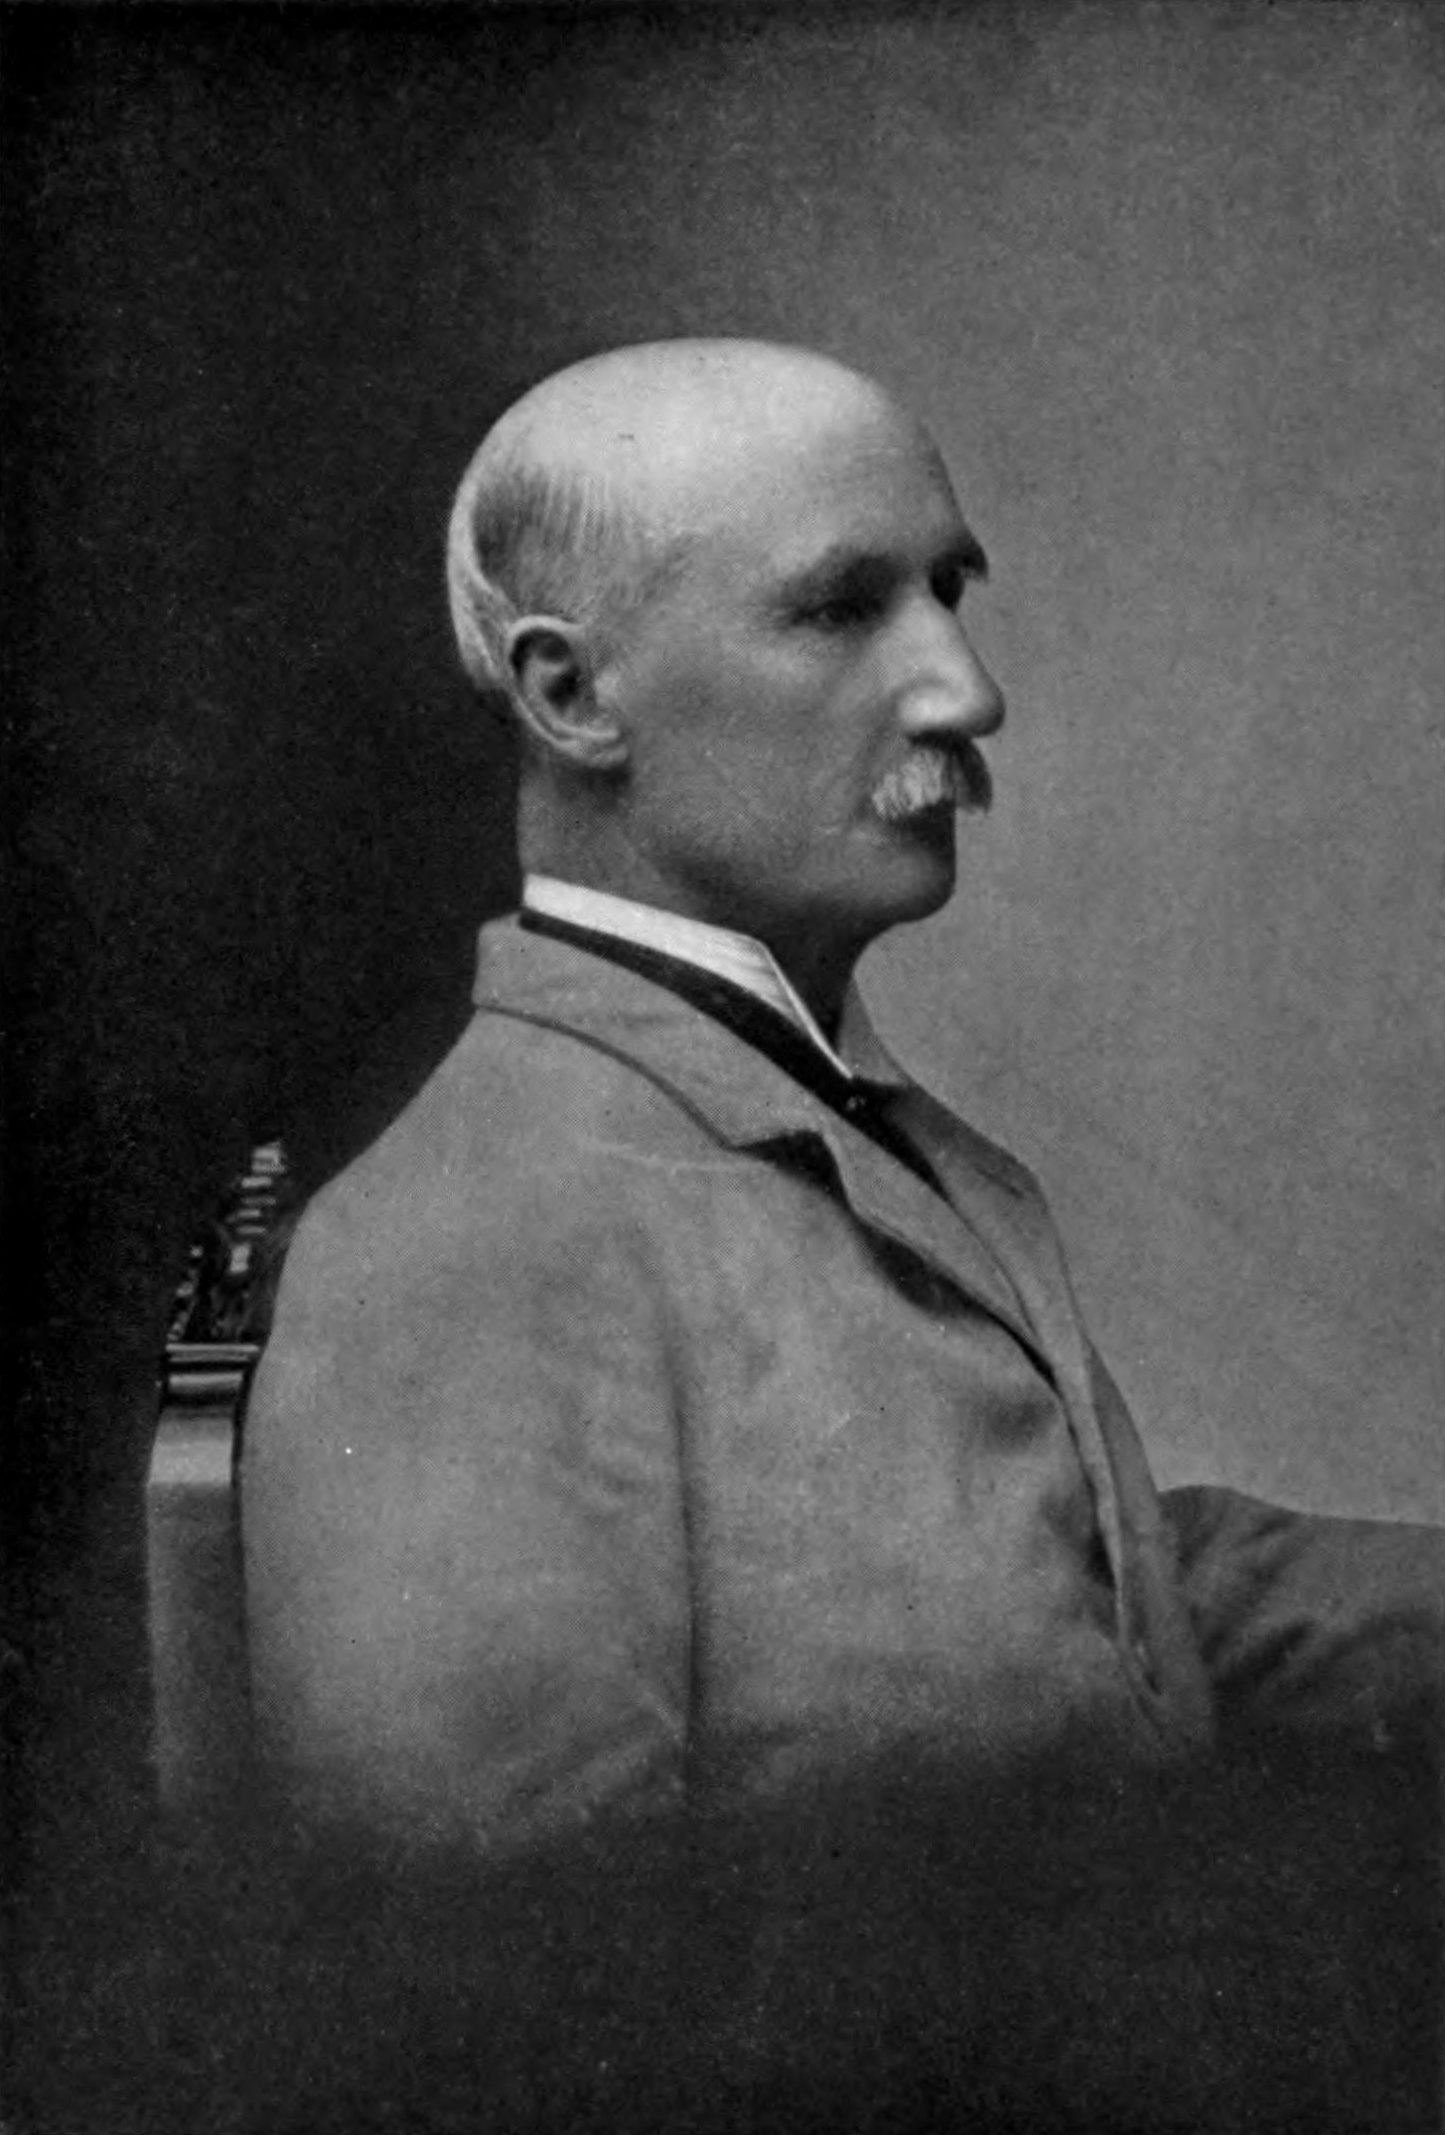 Image of Francis Brinkley from Wikidata